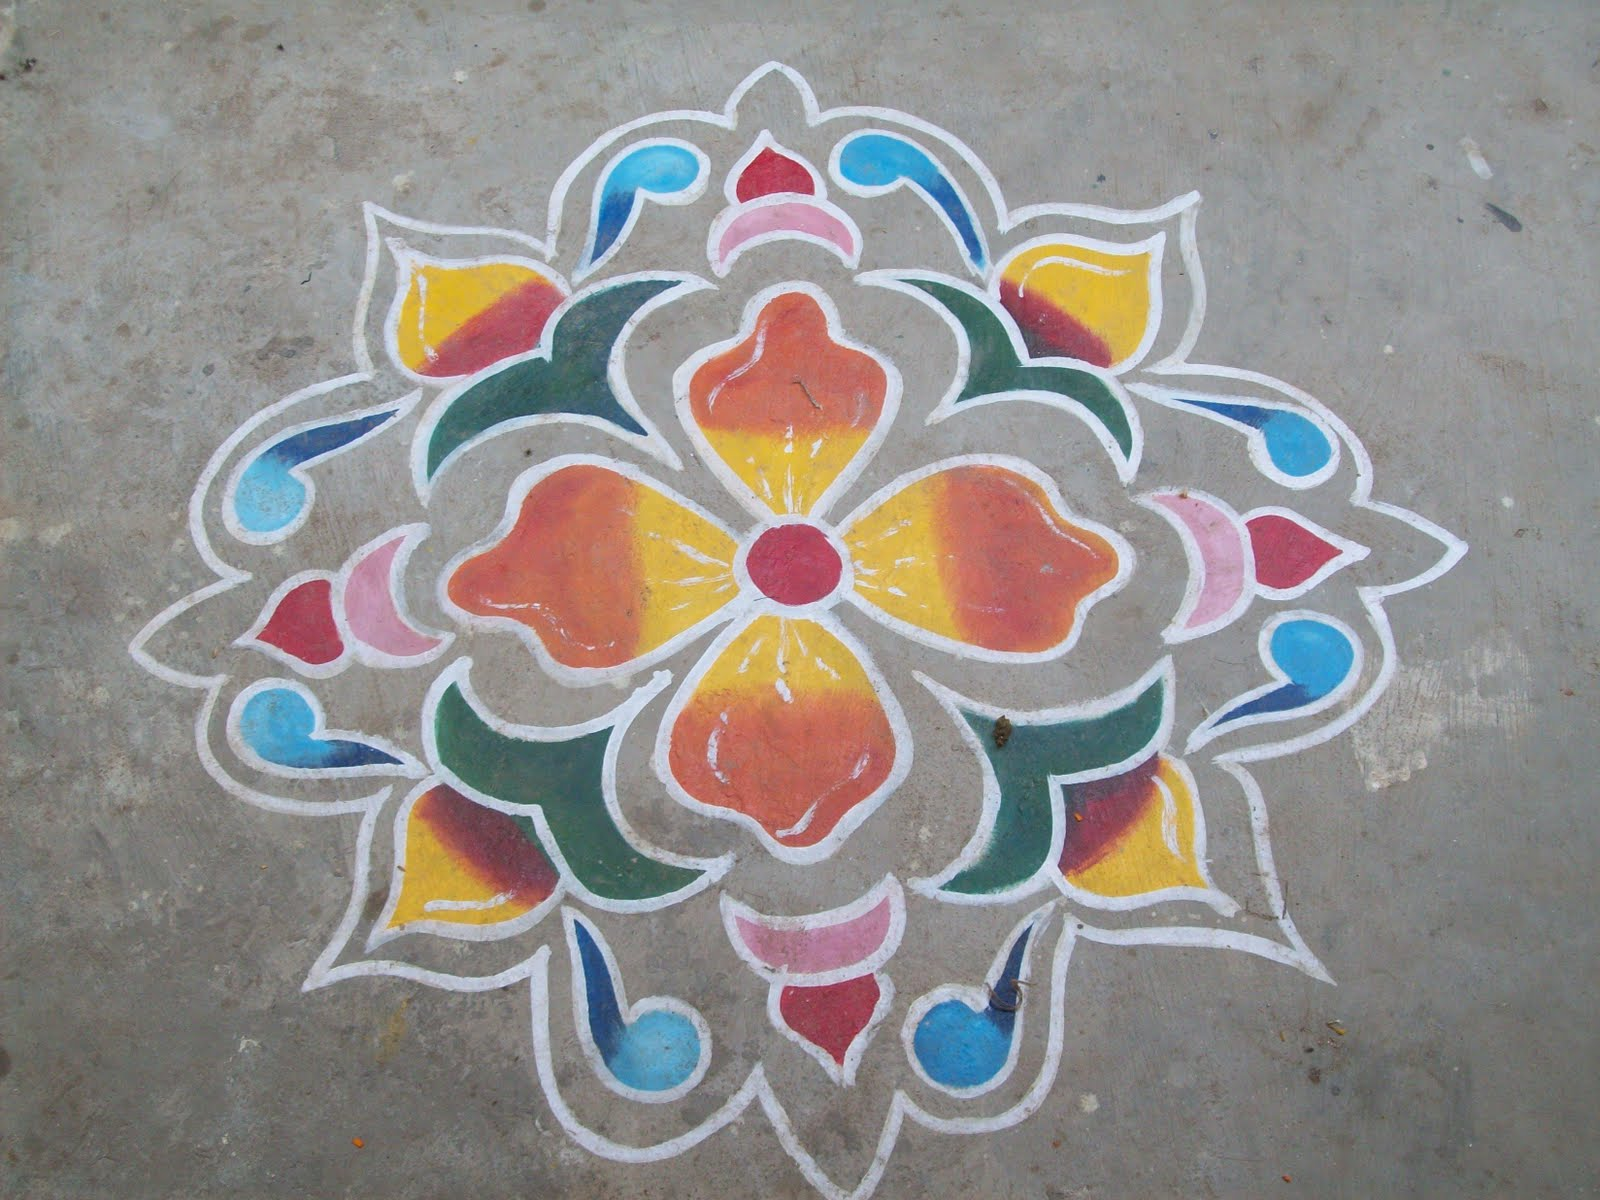 sankranthi muggulu designs without dots.